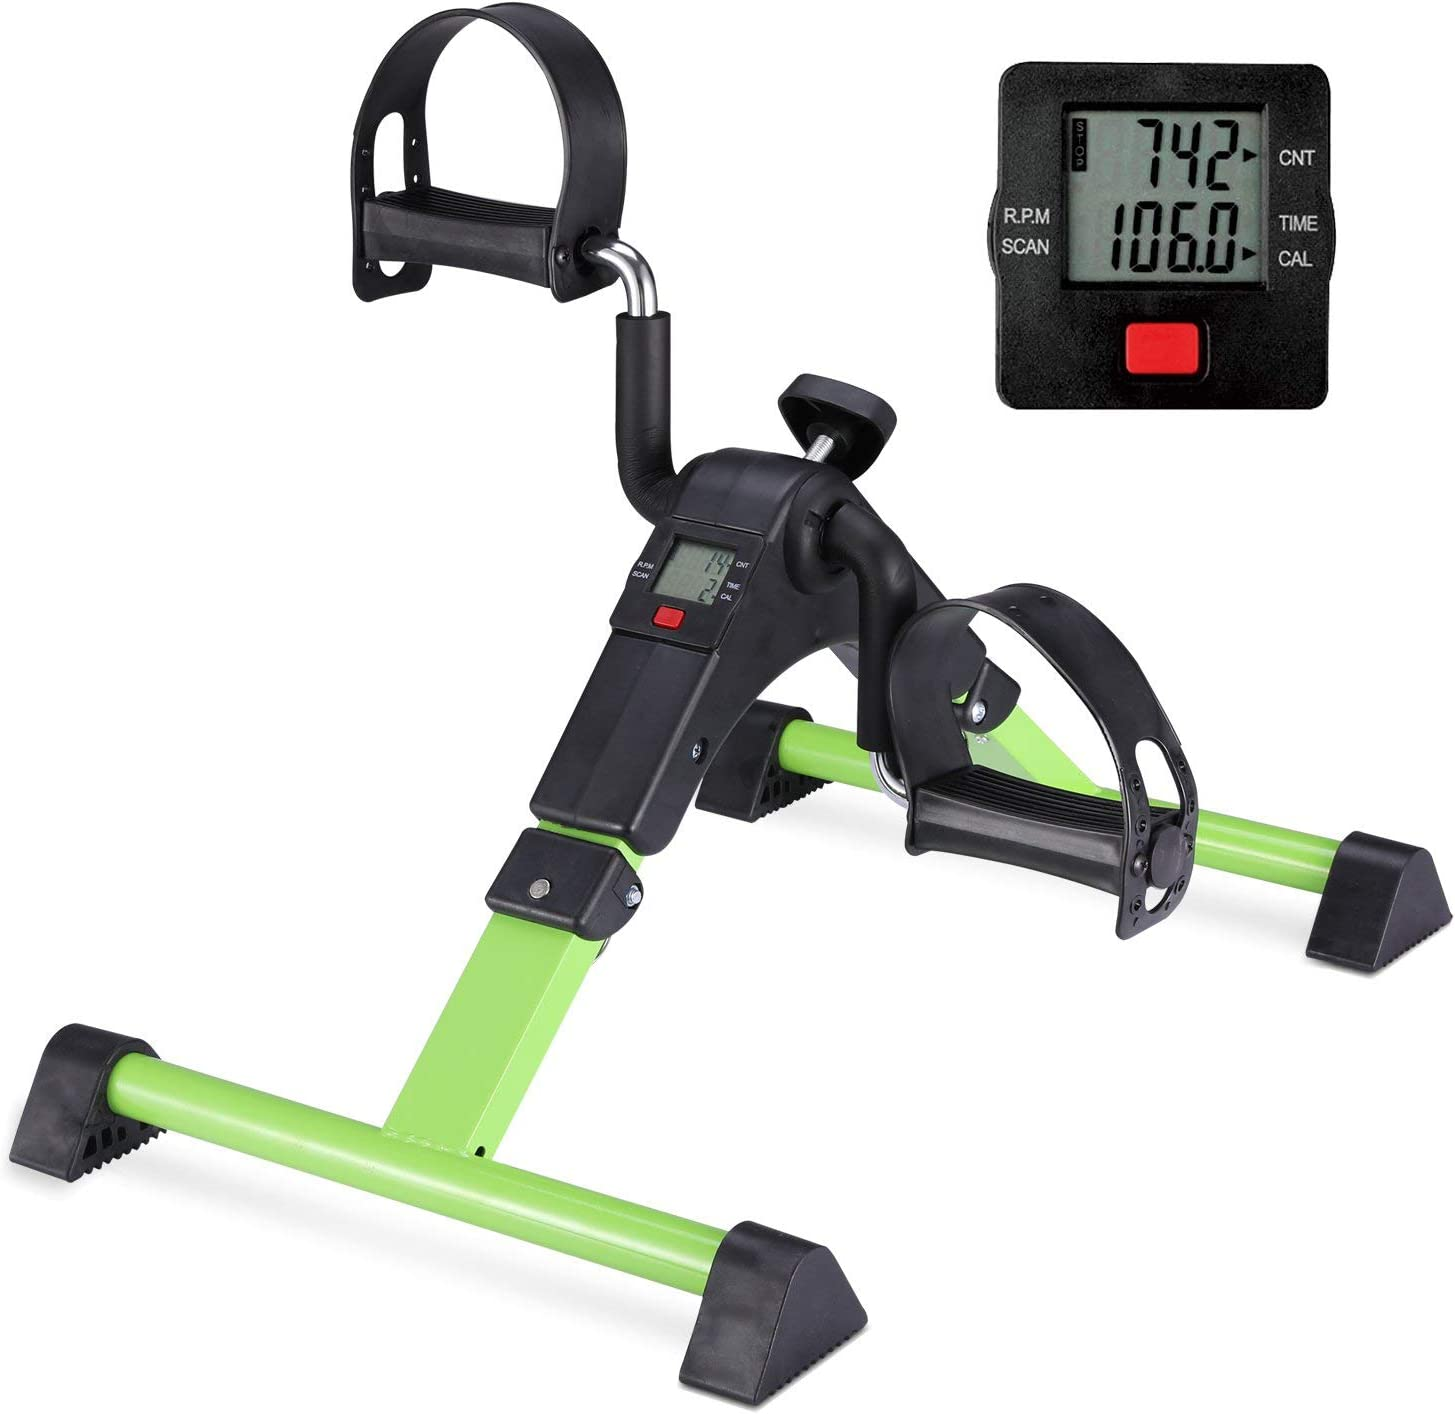 Pedal Exerciser Mini Desk Cycle With Lcd Monitor Foldable Black Green Exercise Bikes Amazon Canada